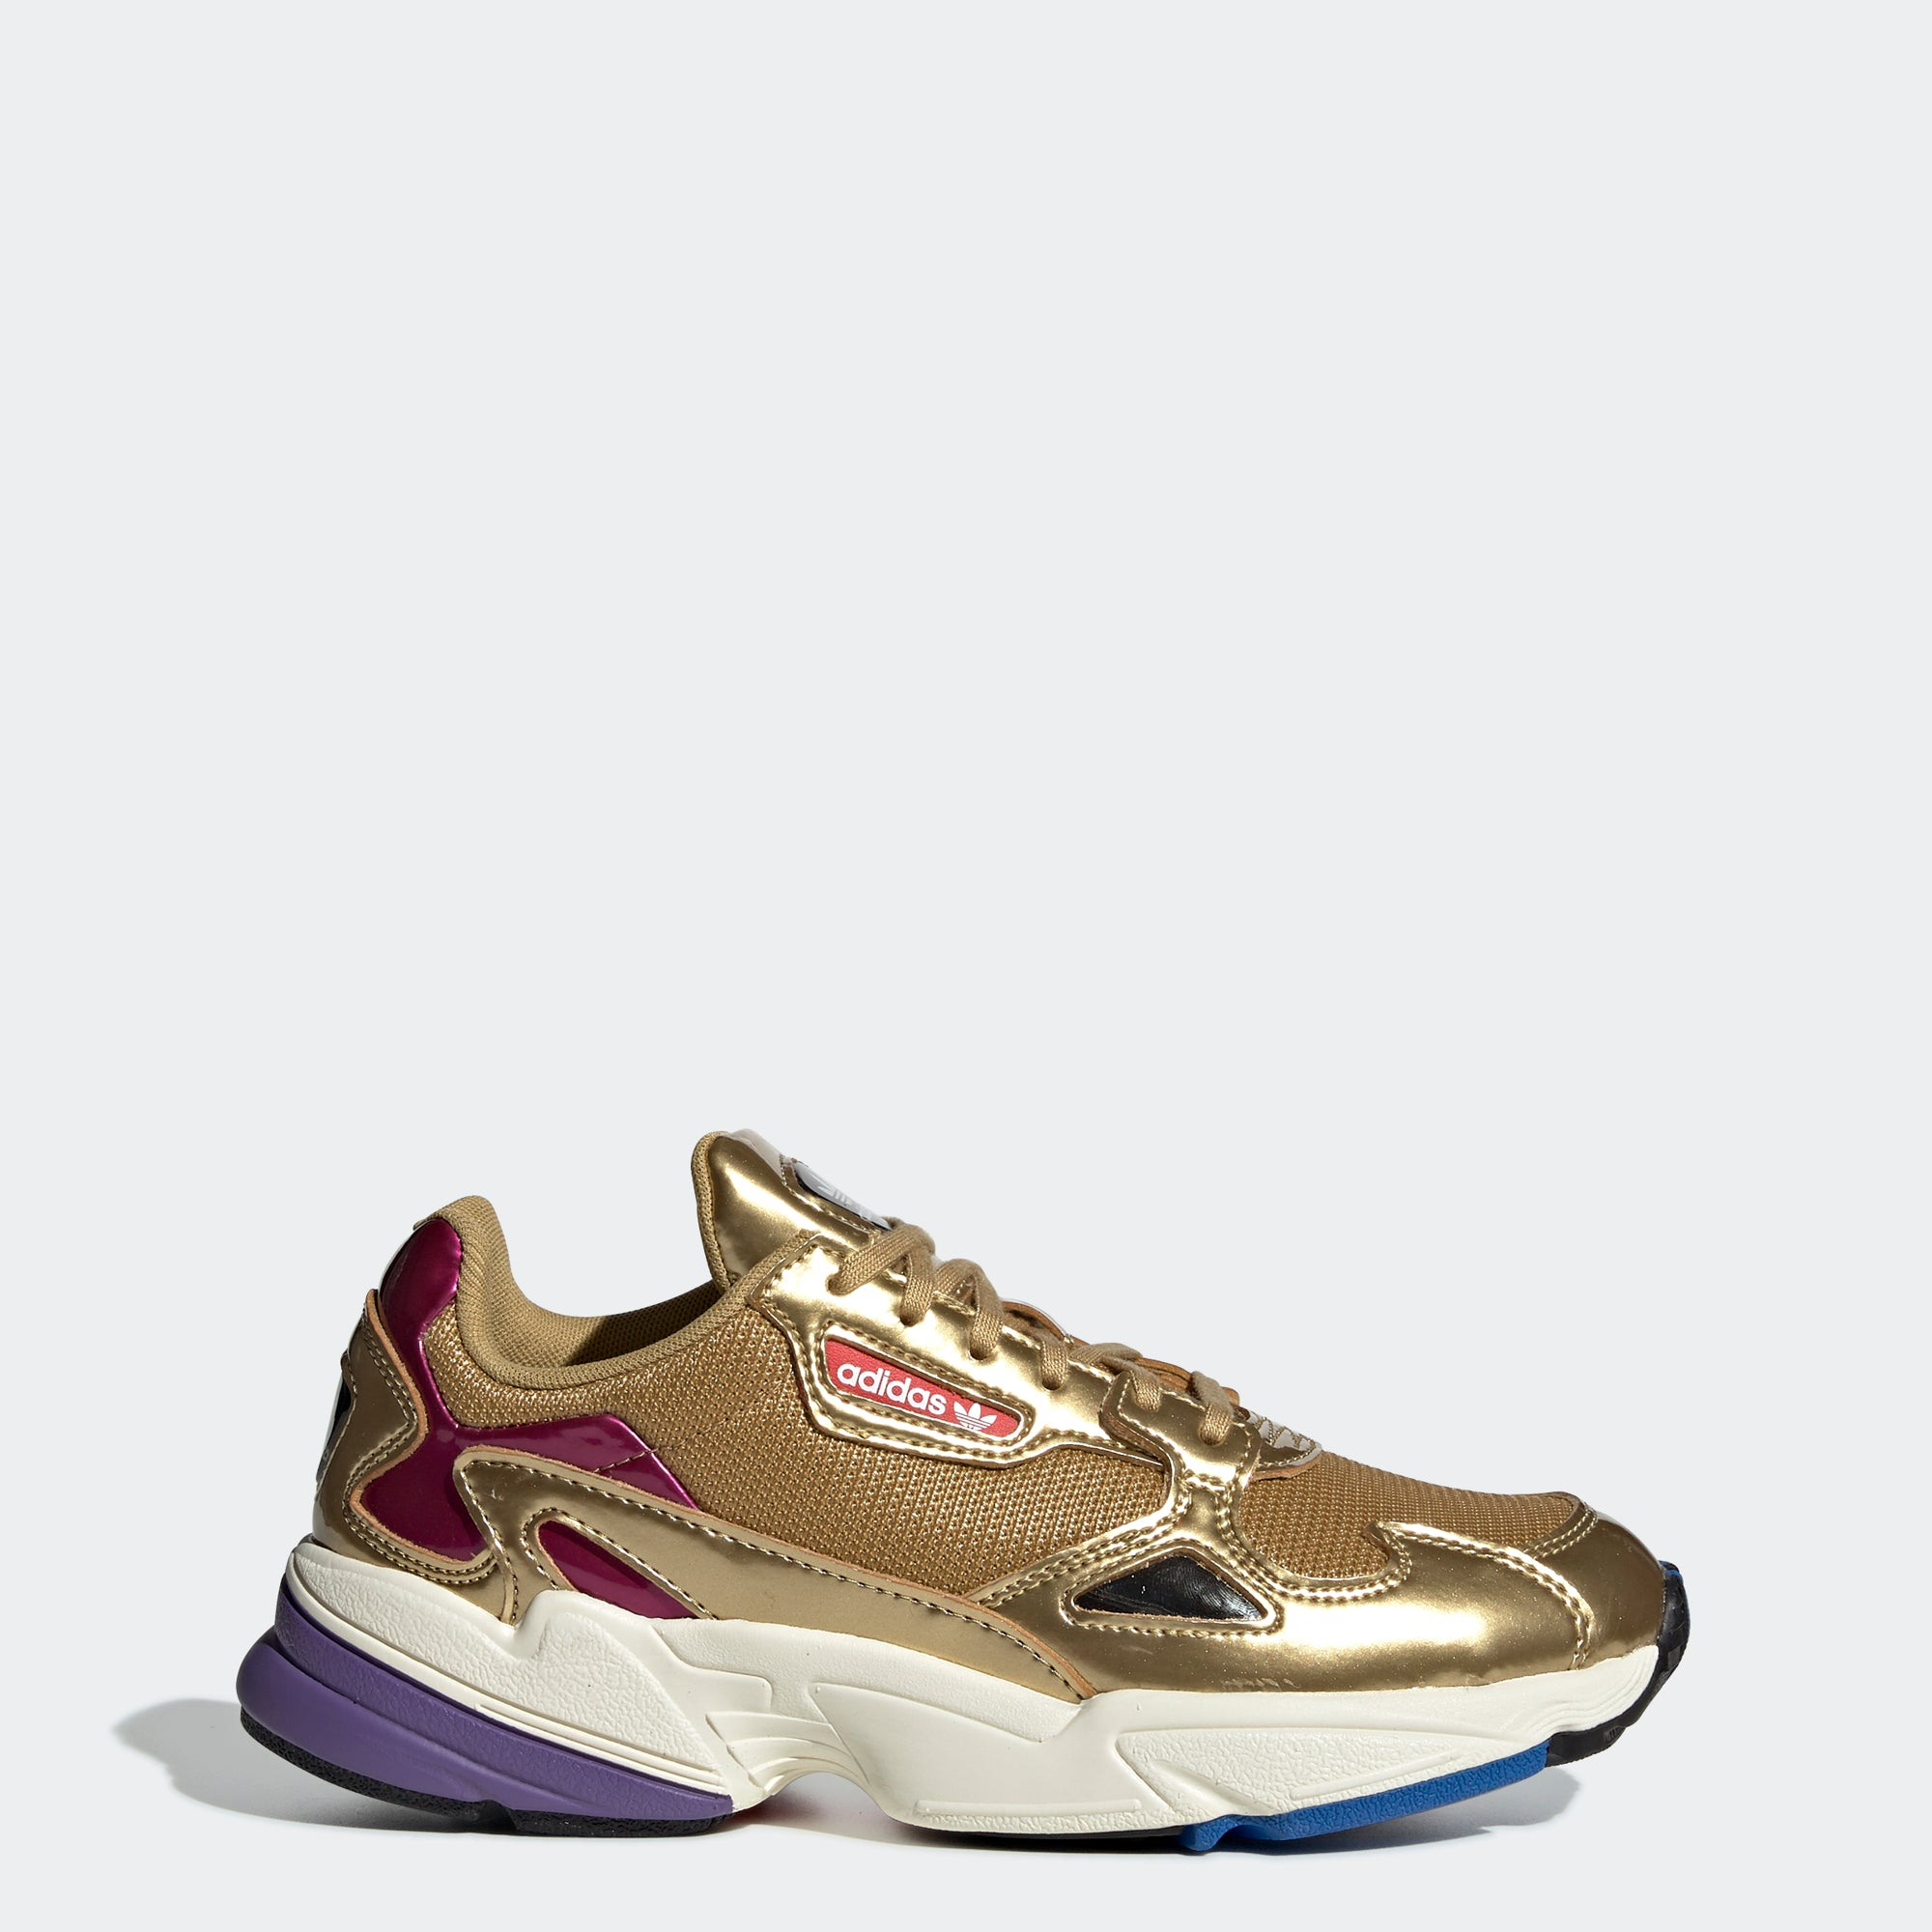 best sneakers bfe2b 05155 Womens adidas Originals Falcon Shoes Gold Metallic